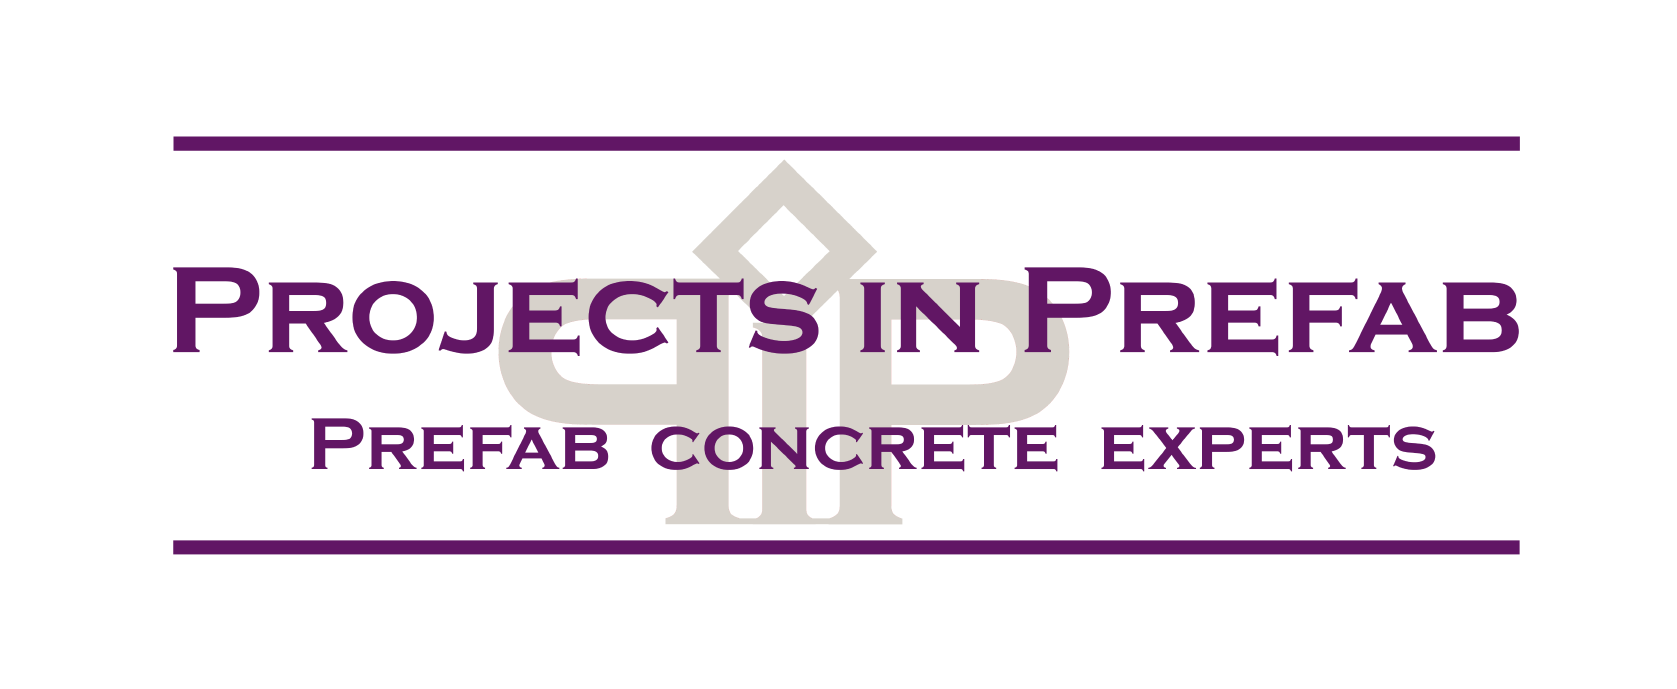 Projects in Prefab